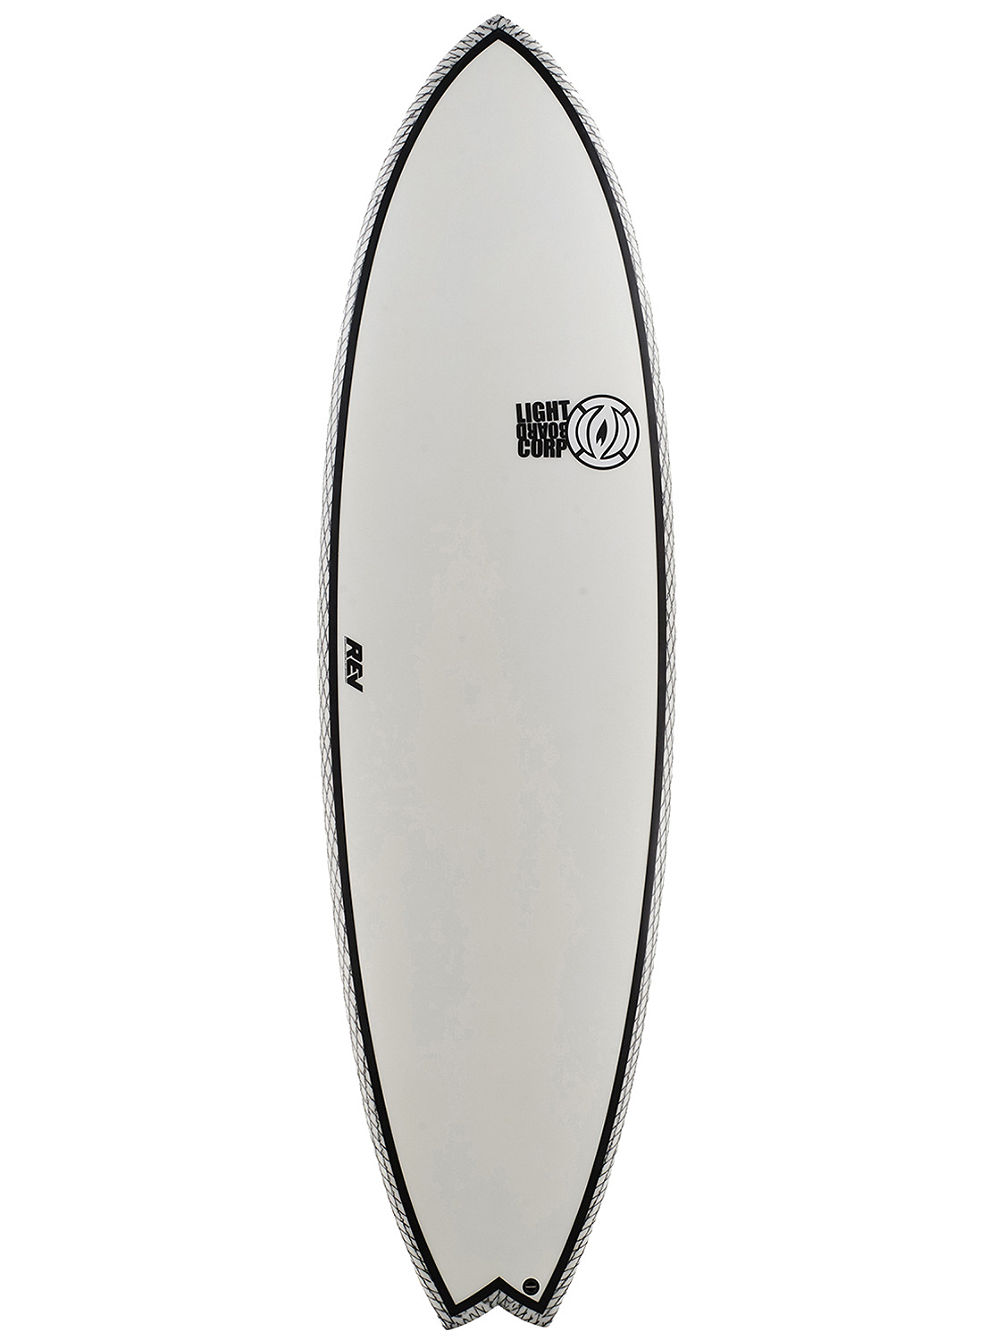 River 2.0 Cv Pro Epoxy Future 5'2 Surfboard